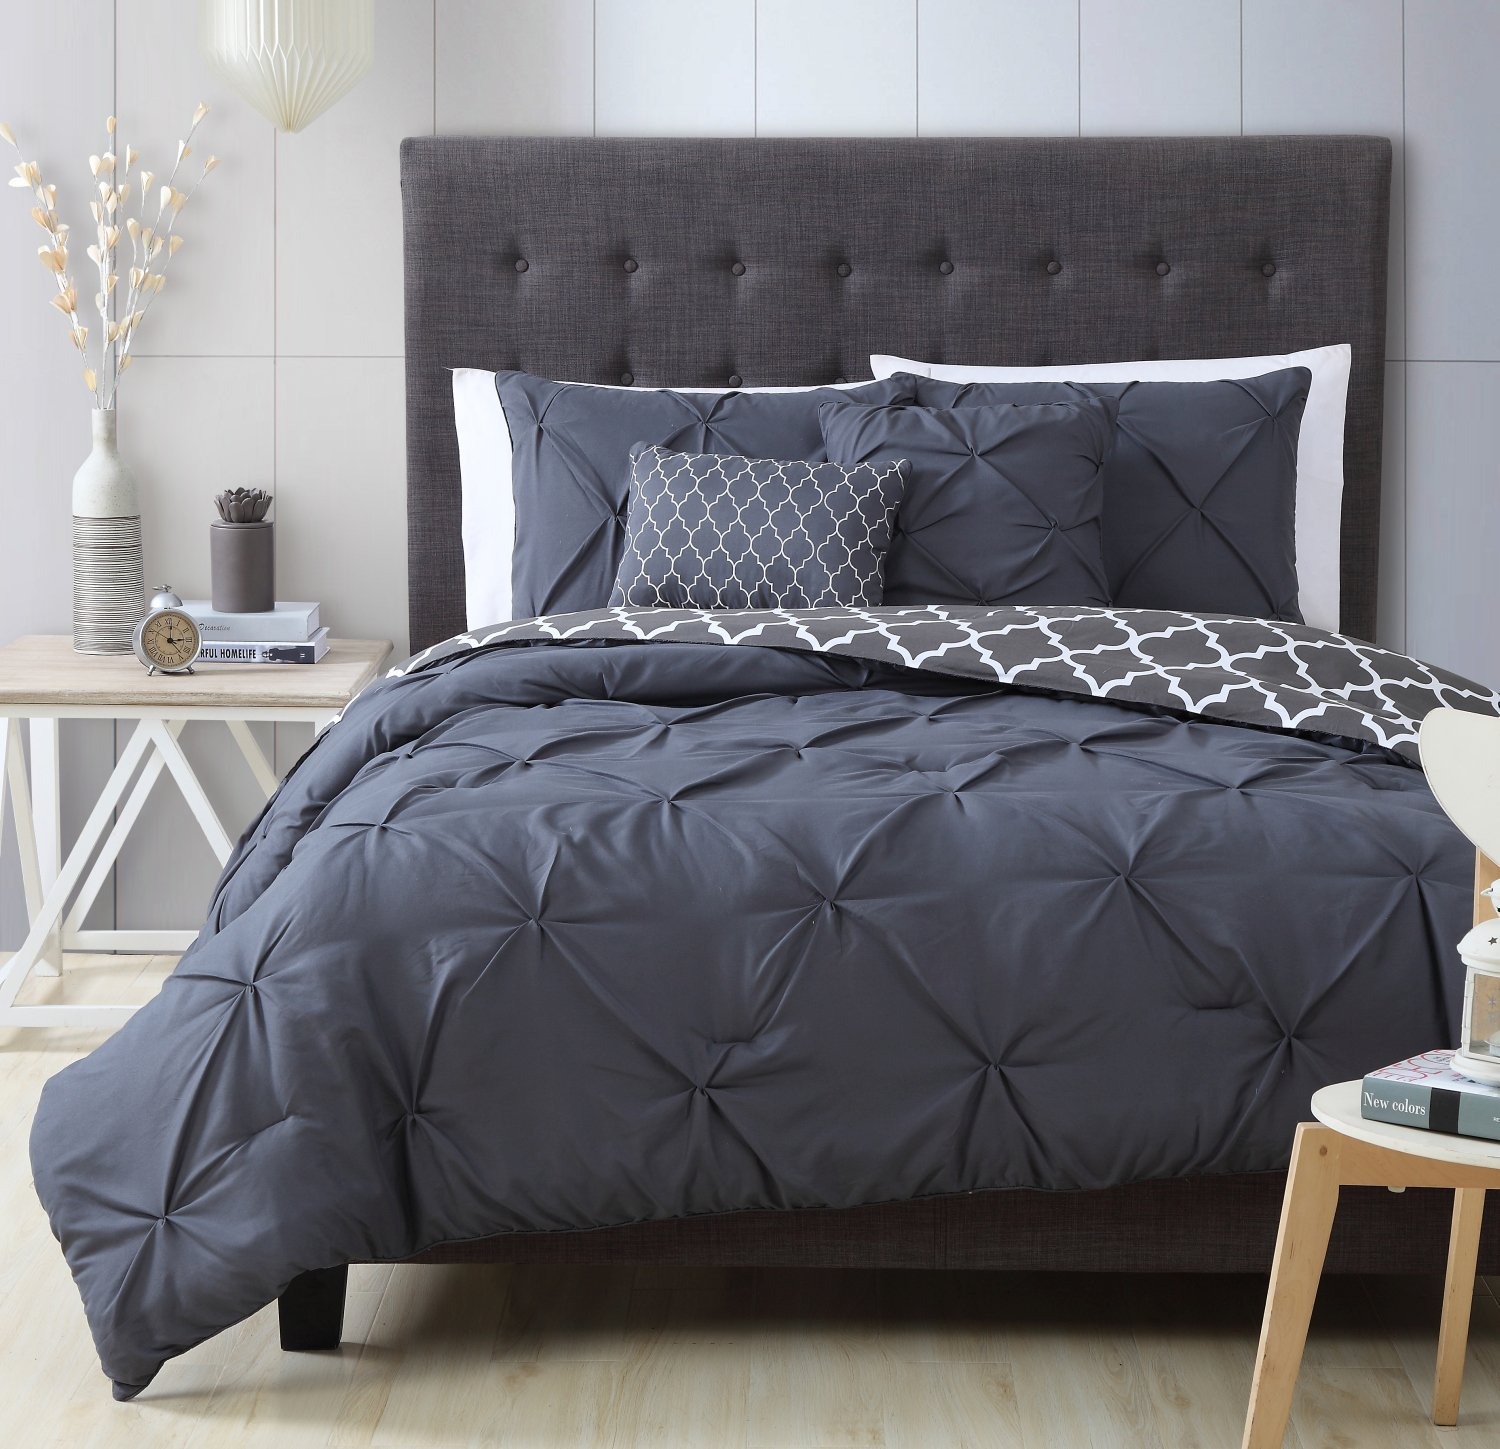 full queen zoom htm productdetail duvet set light aiken comforter piece gray hover fqset three surya to